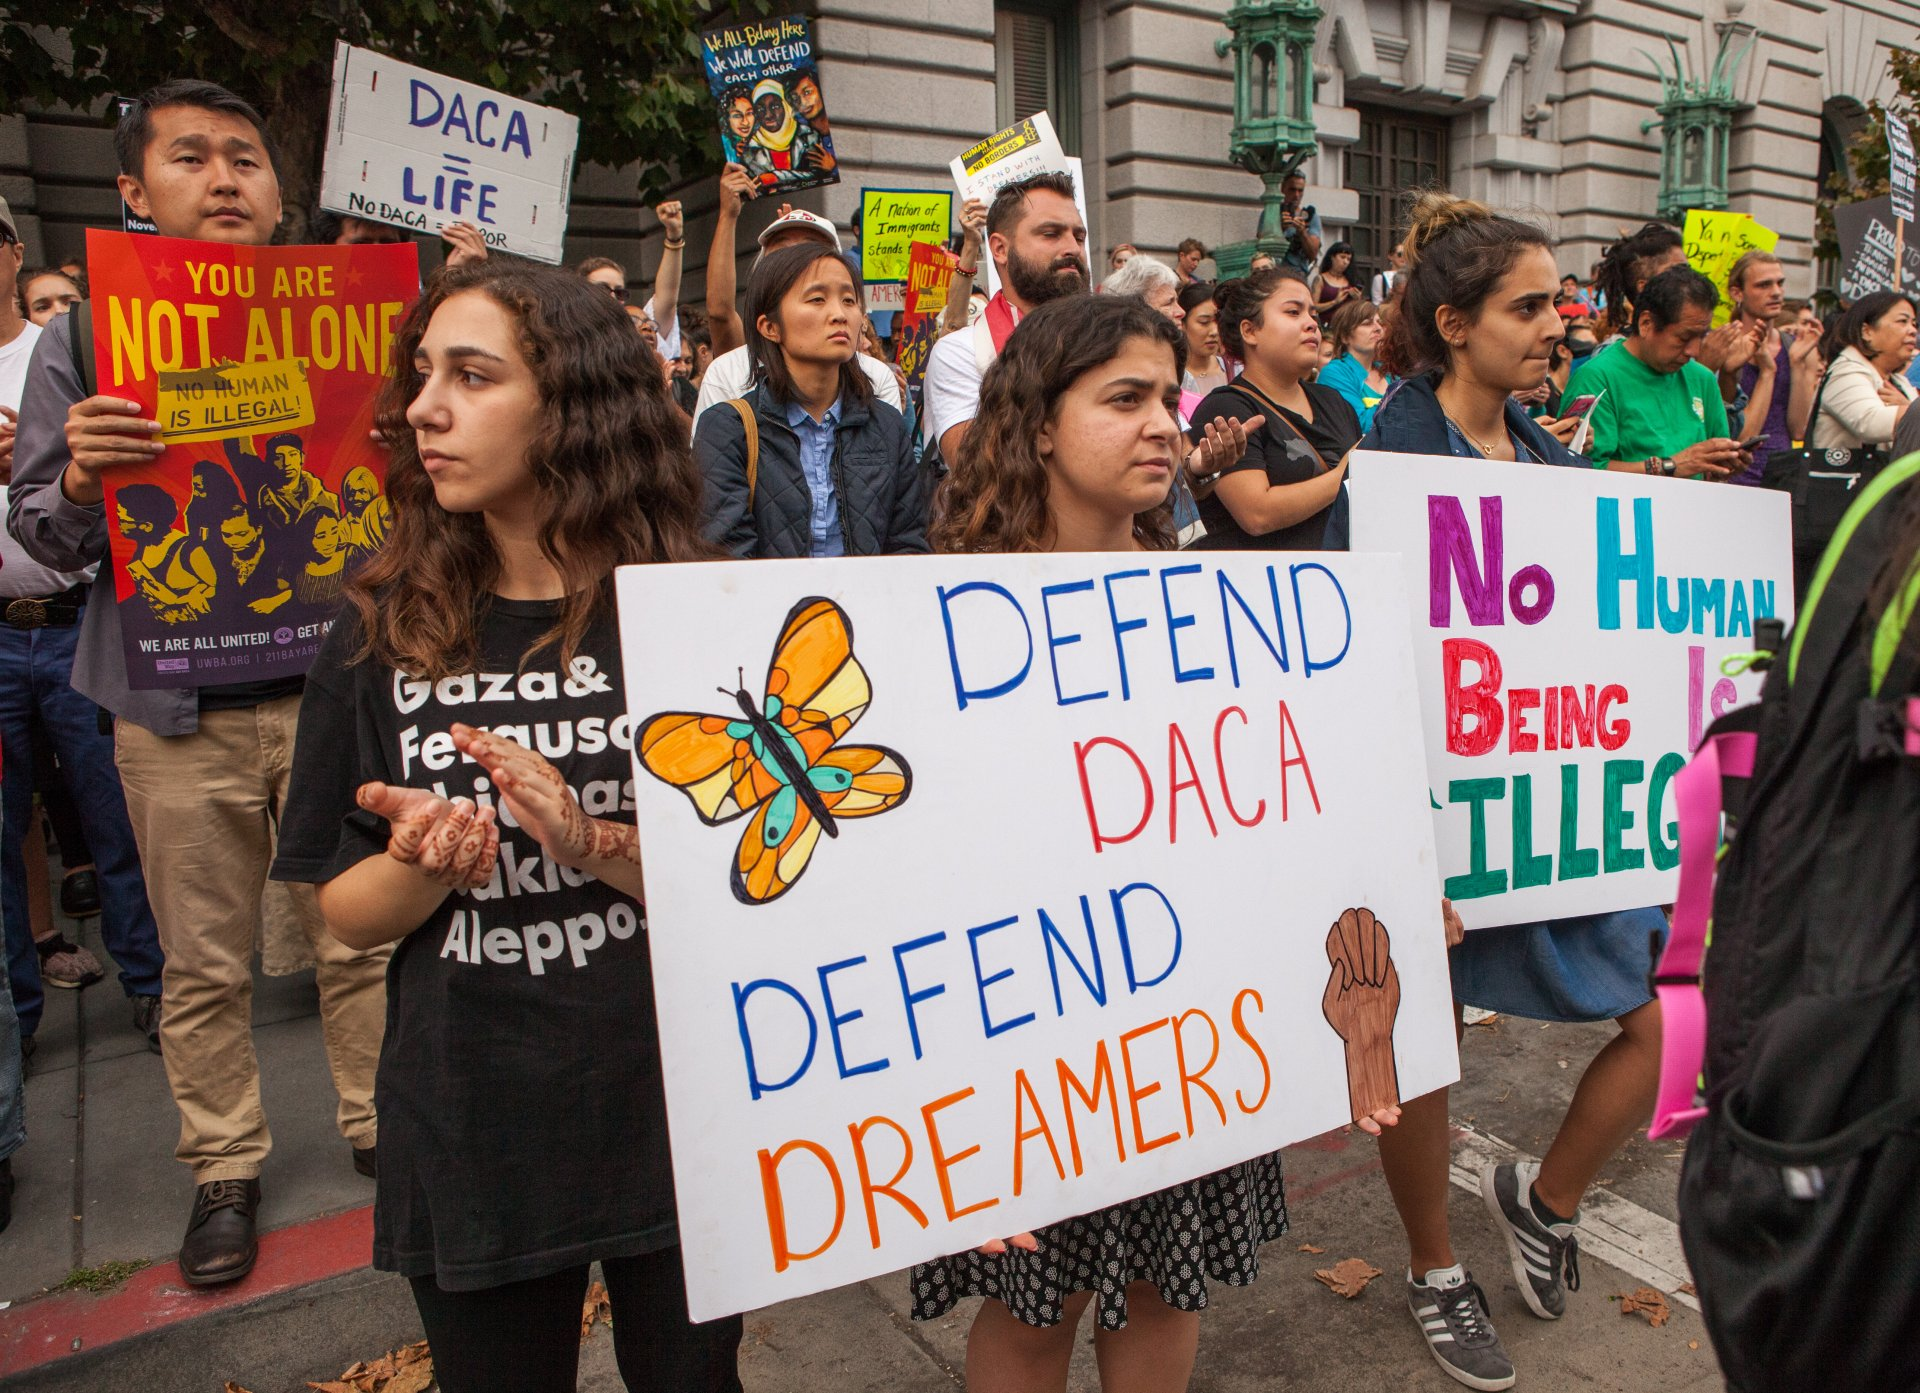 Defend DACA protesters in San Francisco on September 5, 2017. | Photo courtesy of Pax Gethen